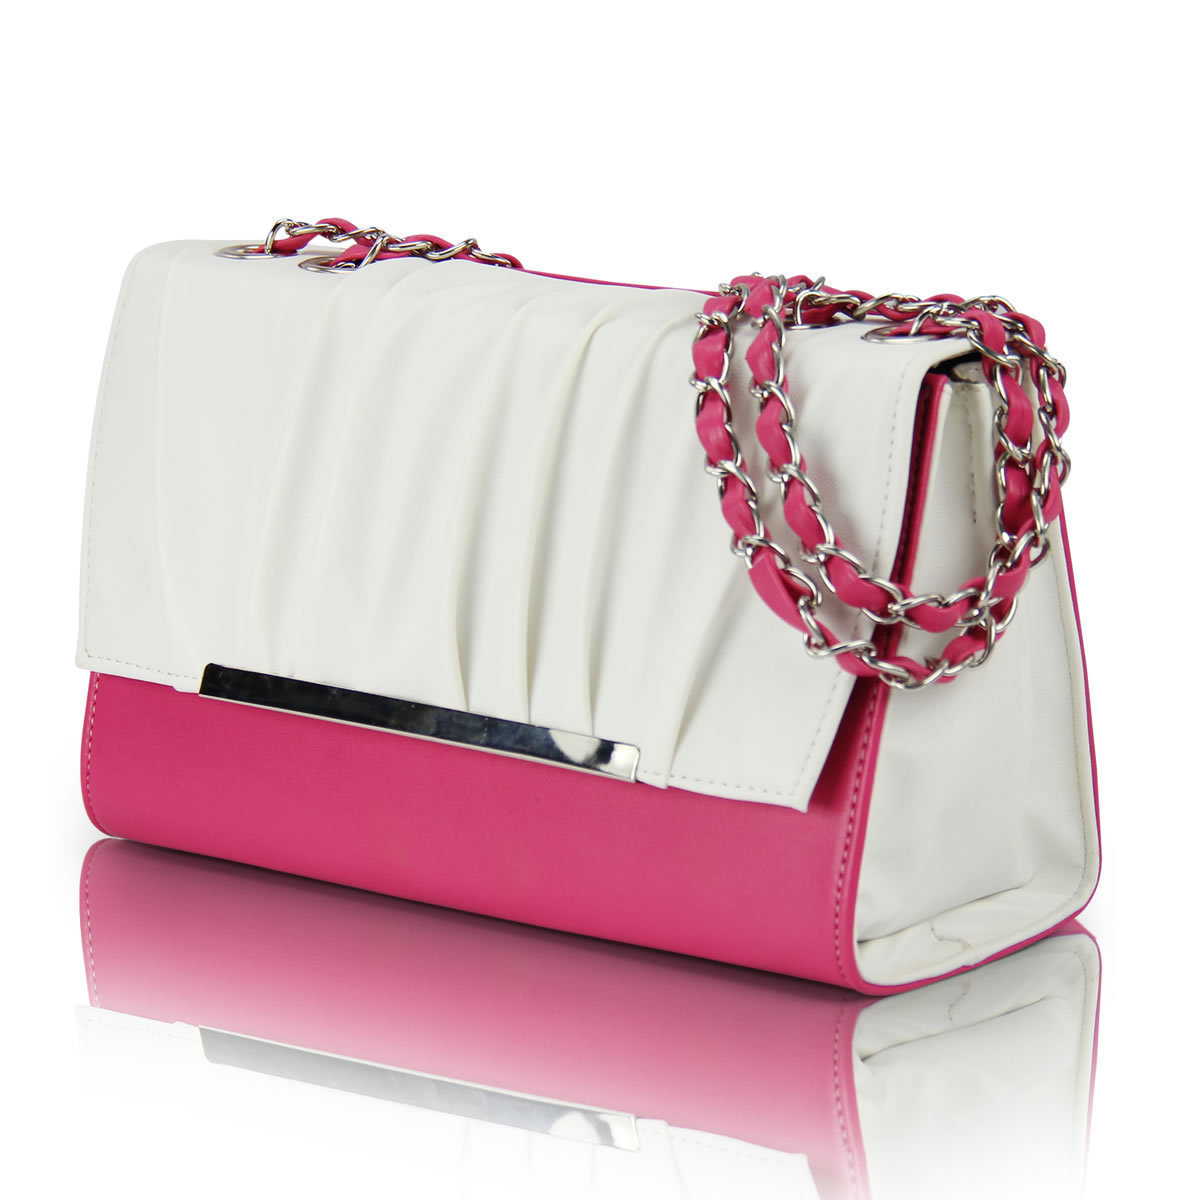 2013 female small bags jelly candy color chain colorant match bag small fresh women's handbag shoulder bag